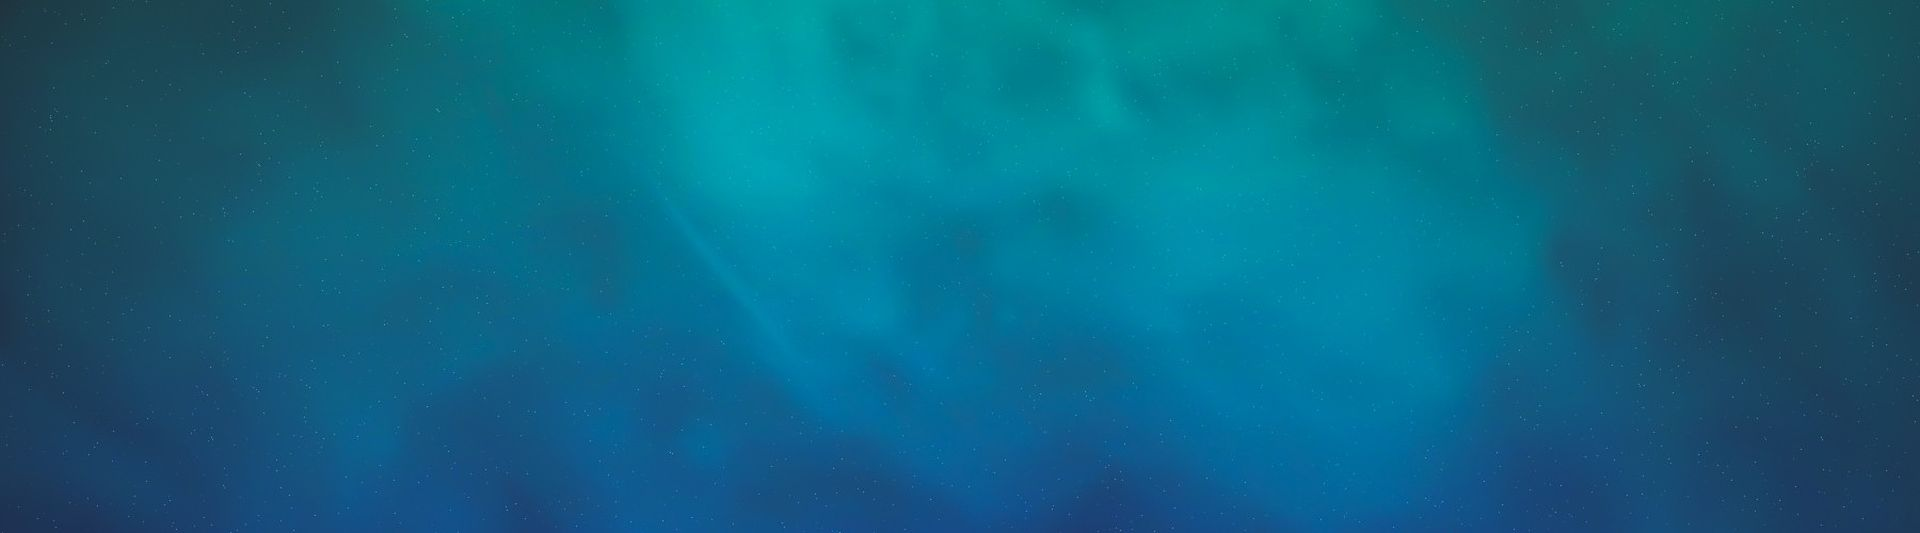 background_blue_green